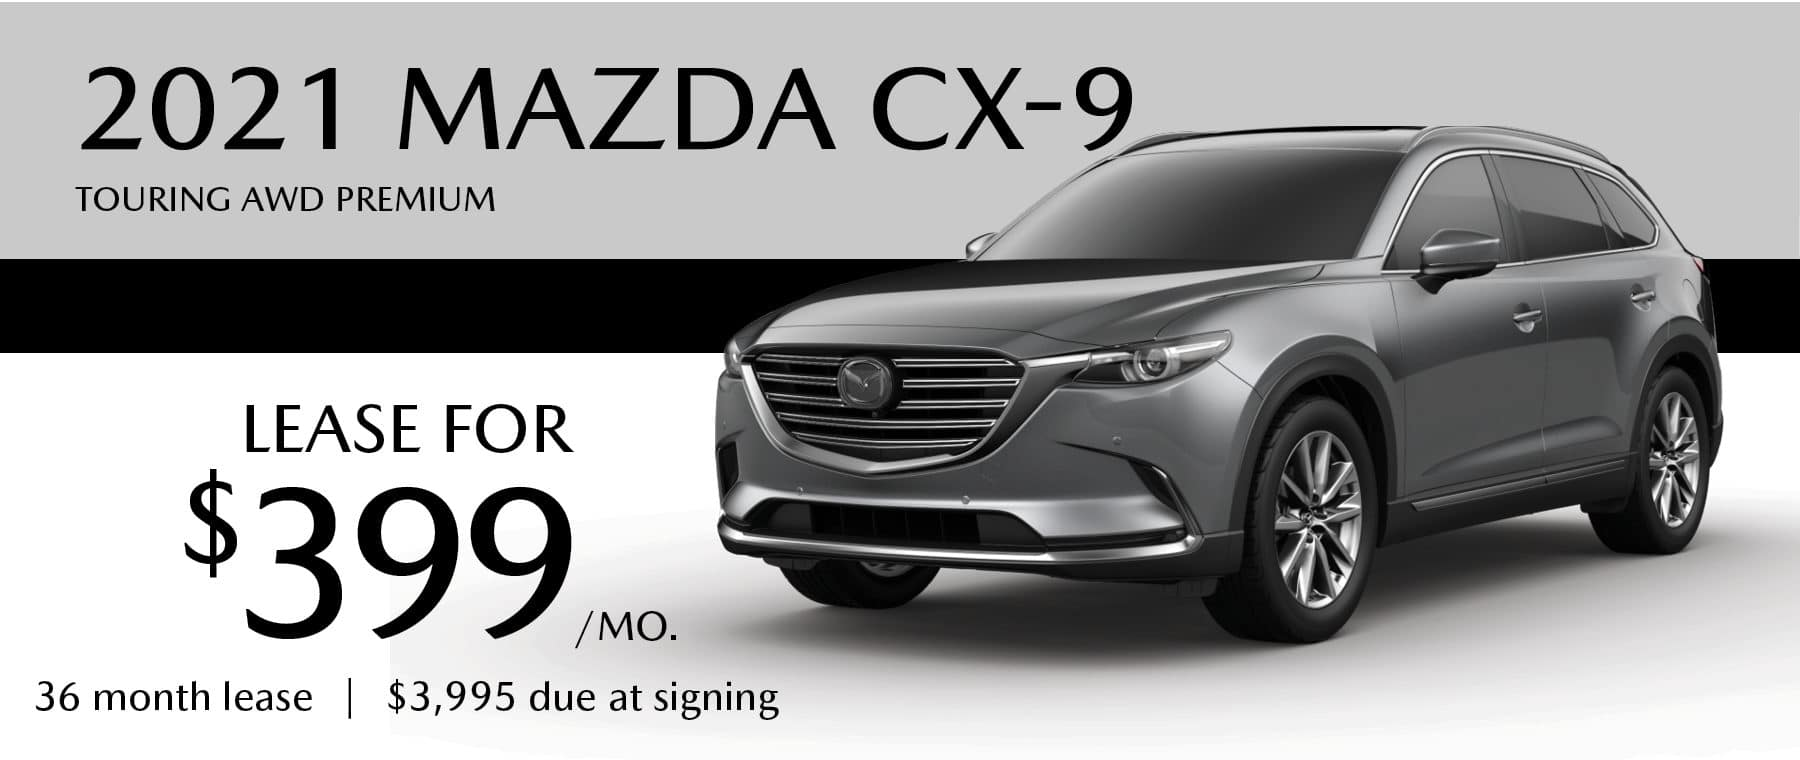 2021 Mazda CX-( Lease for $399/month for 36 months